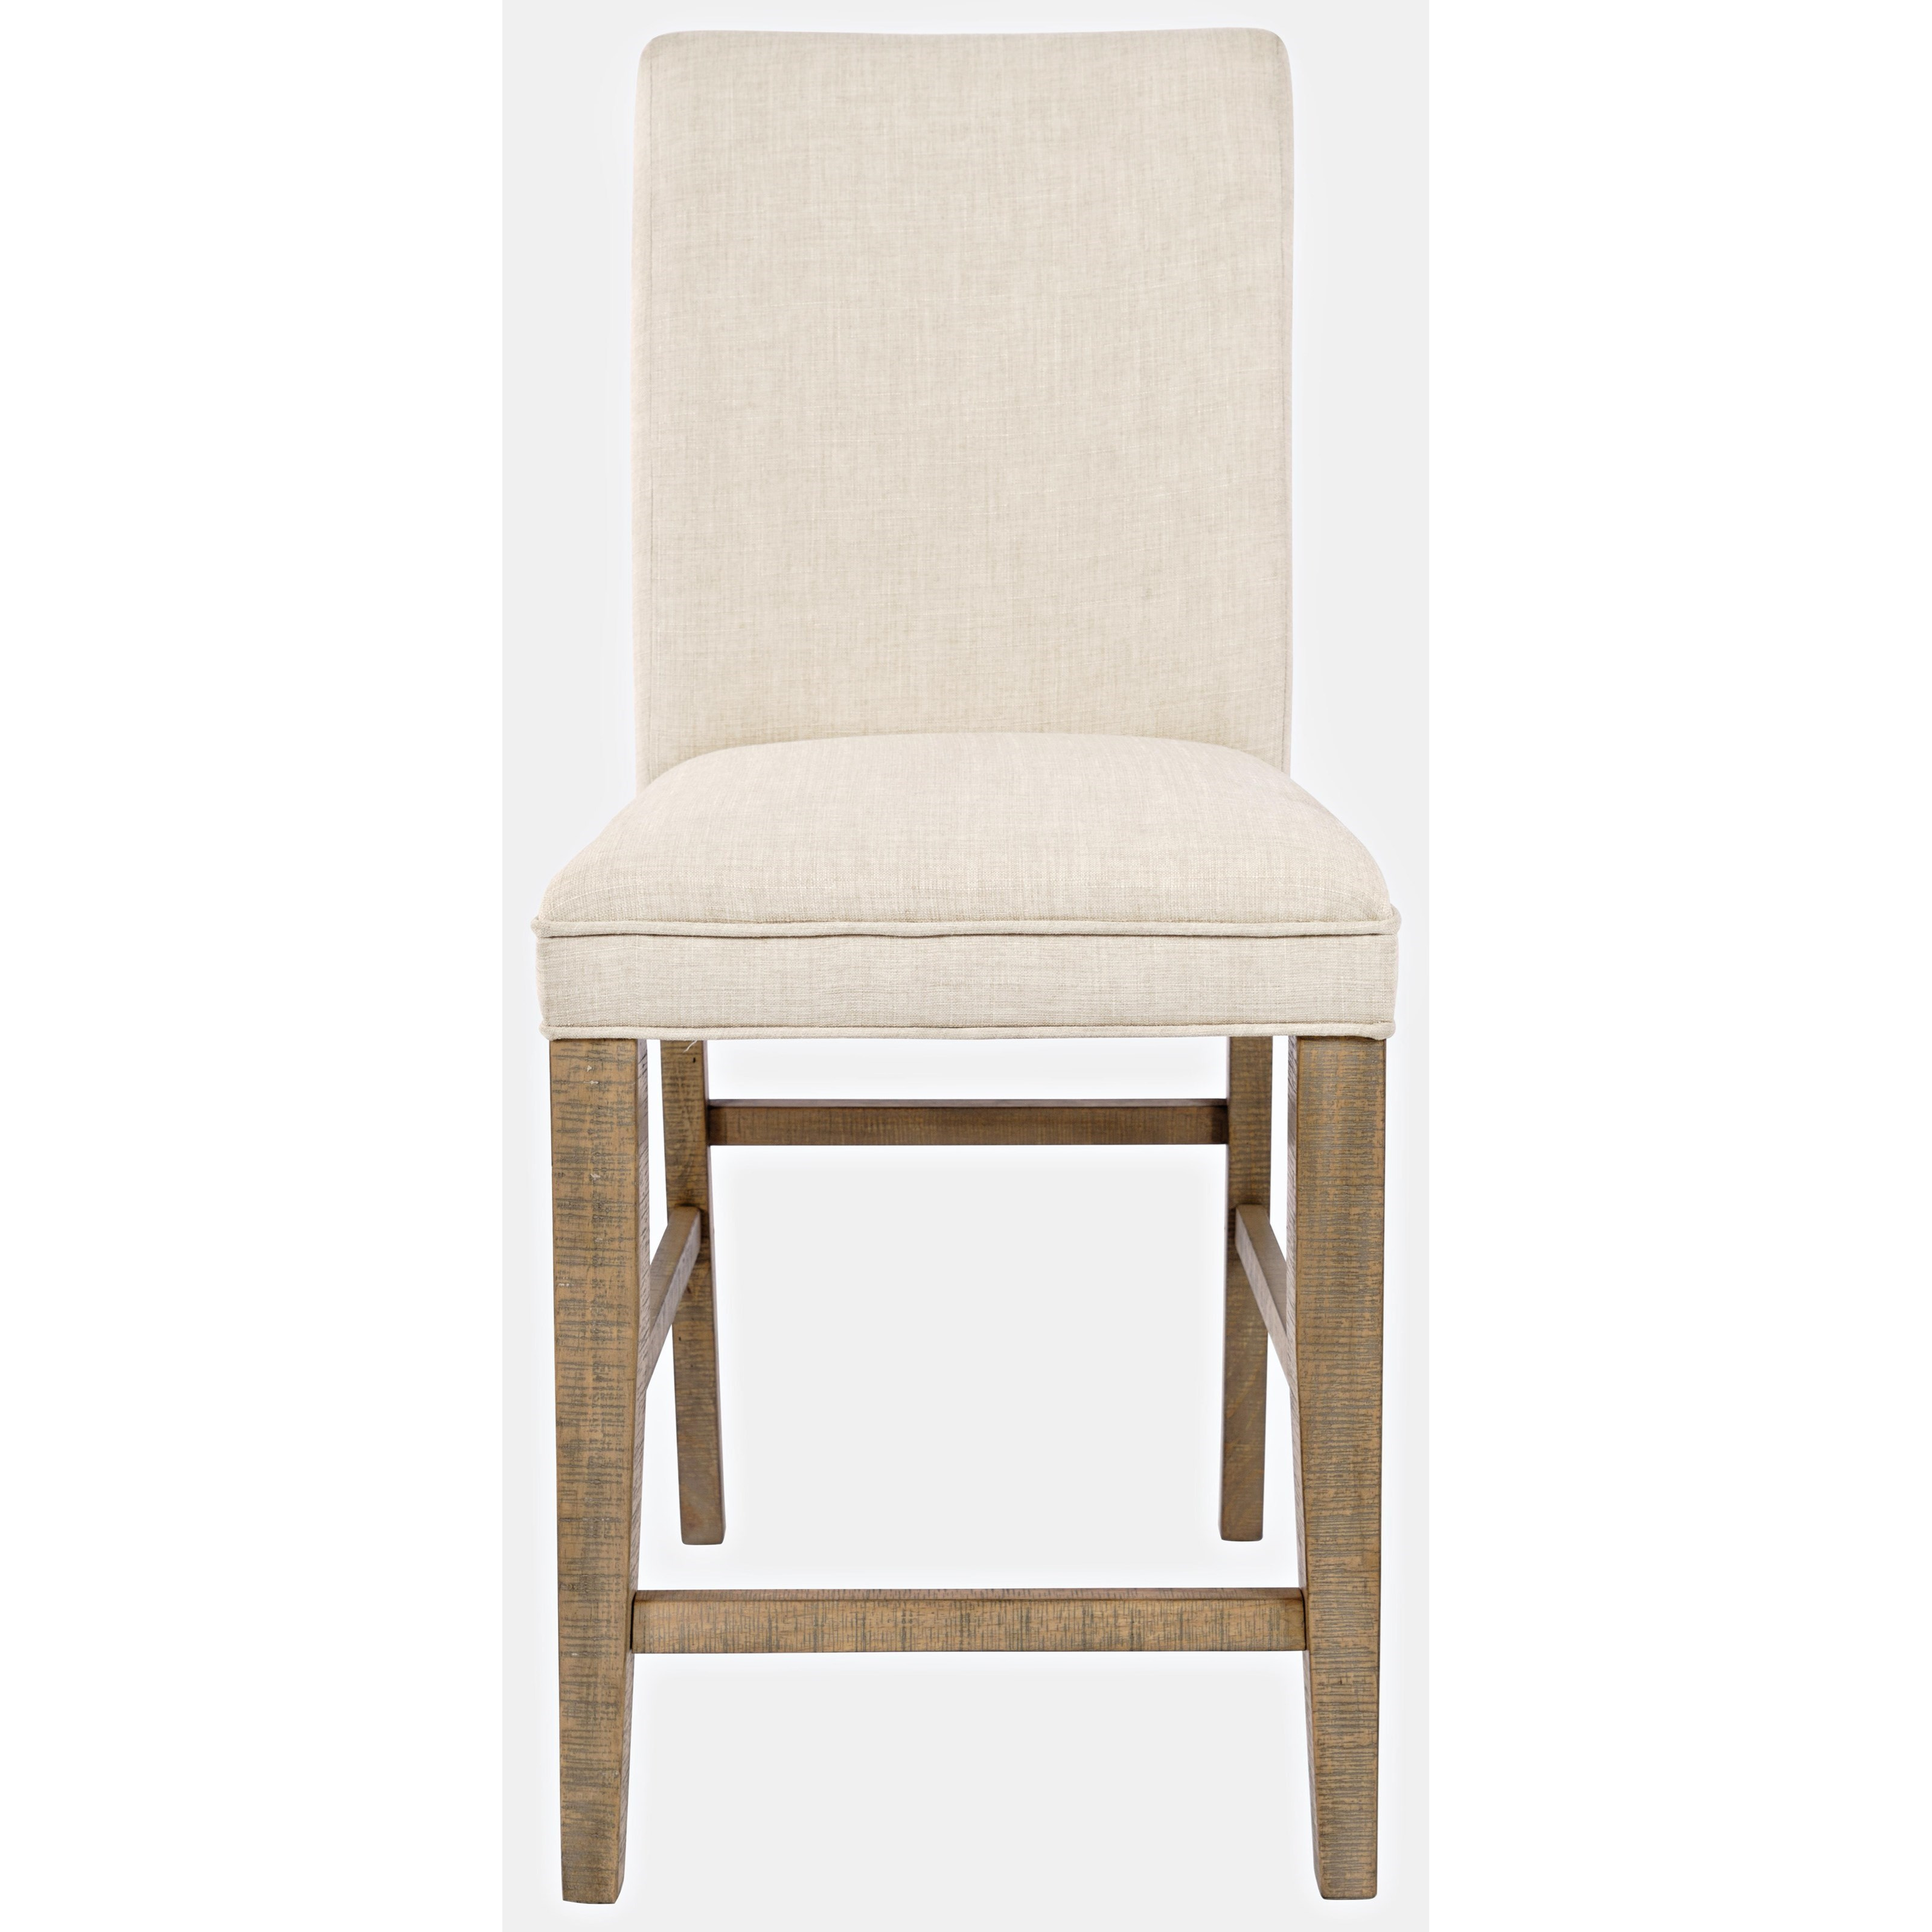 Carlyle Crossing Upholstered Stool by VFM Signature at Virginia Furniture Market